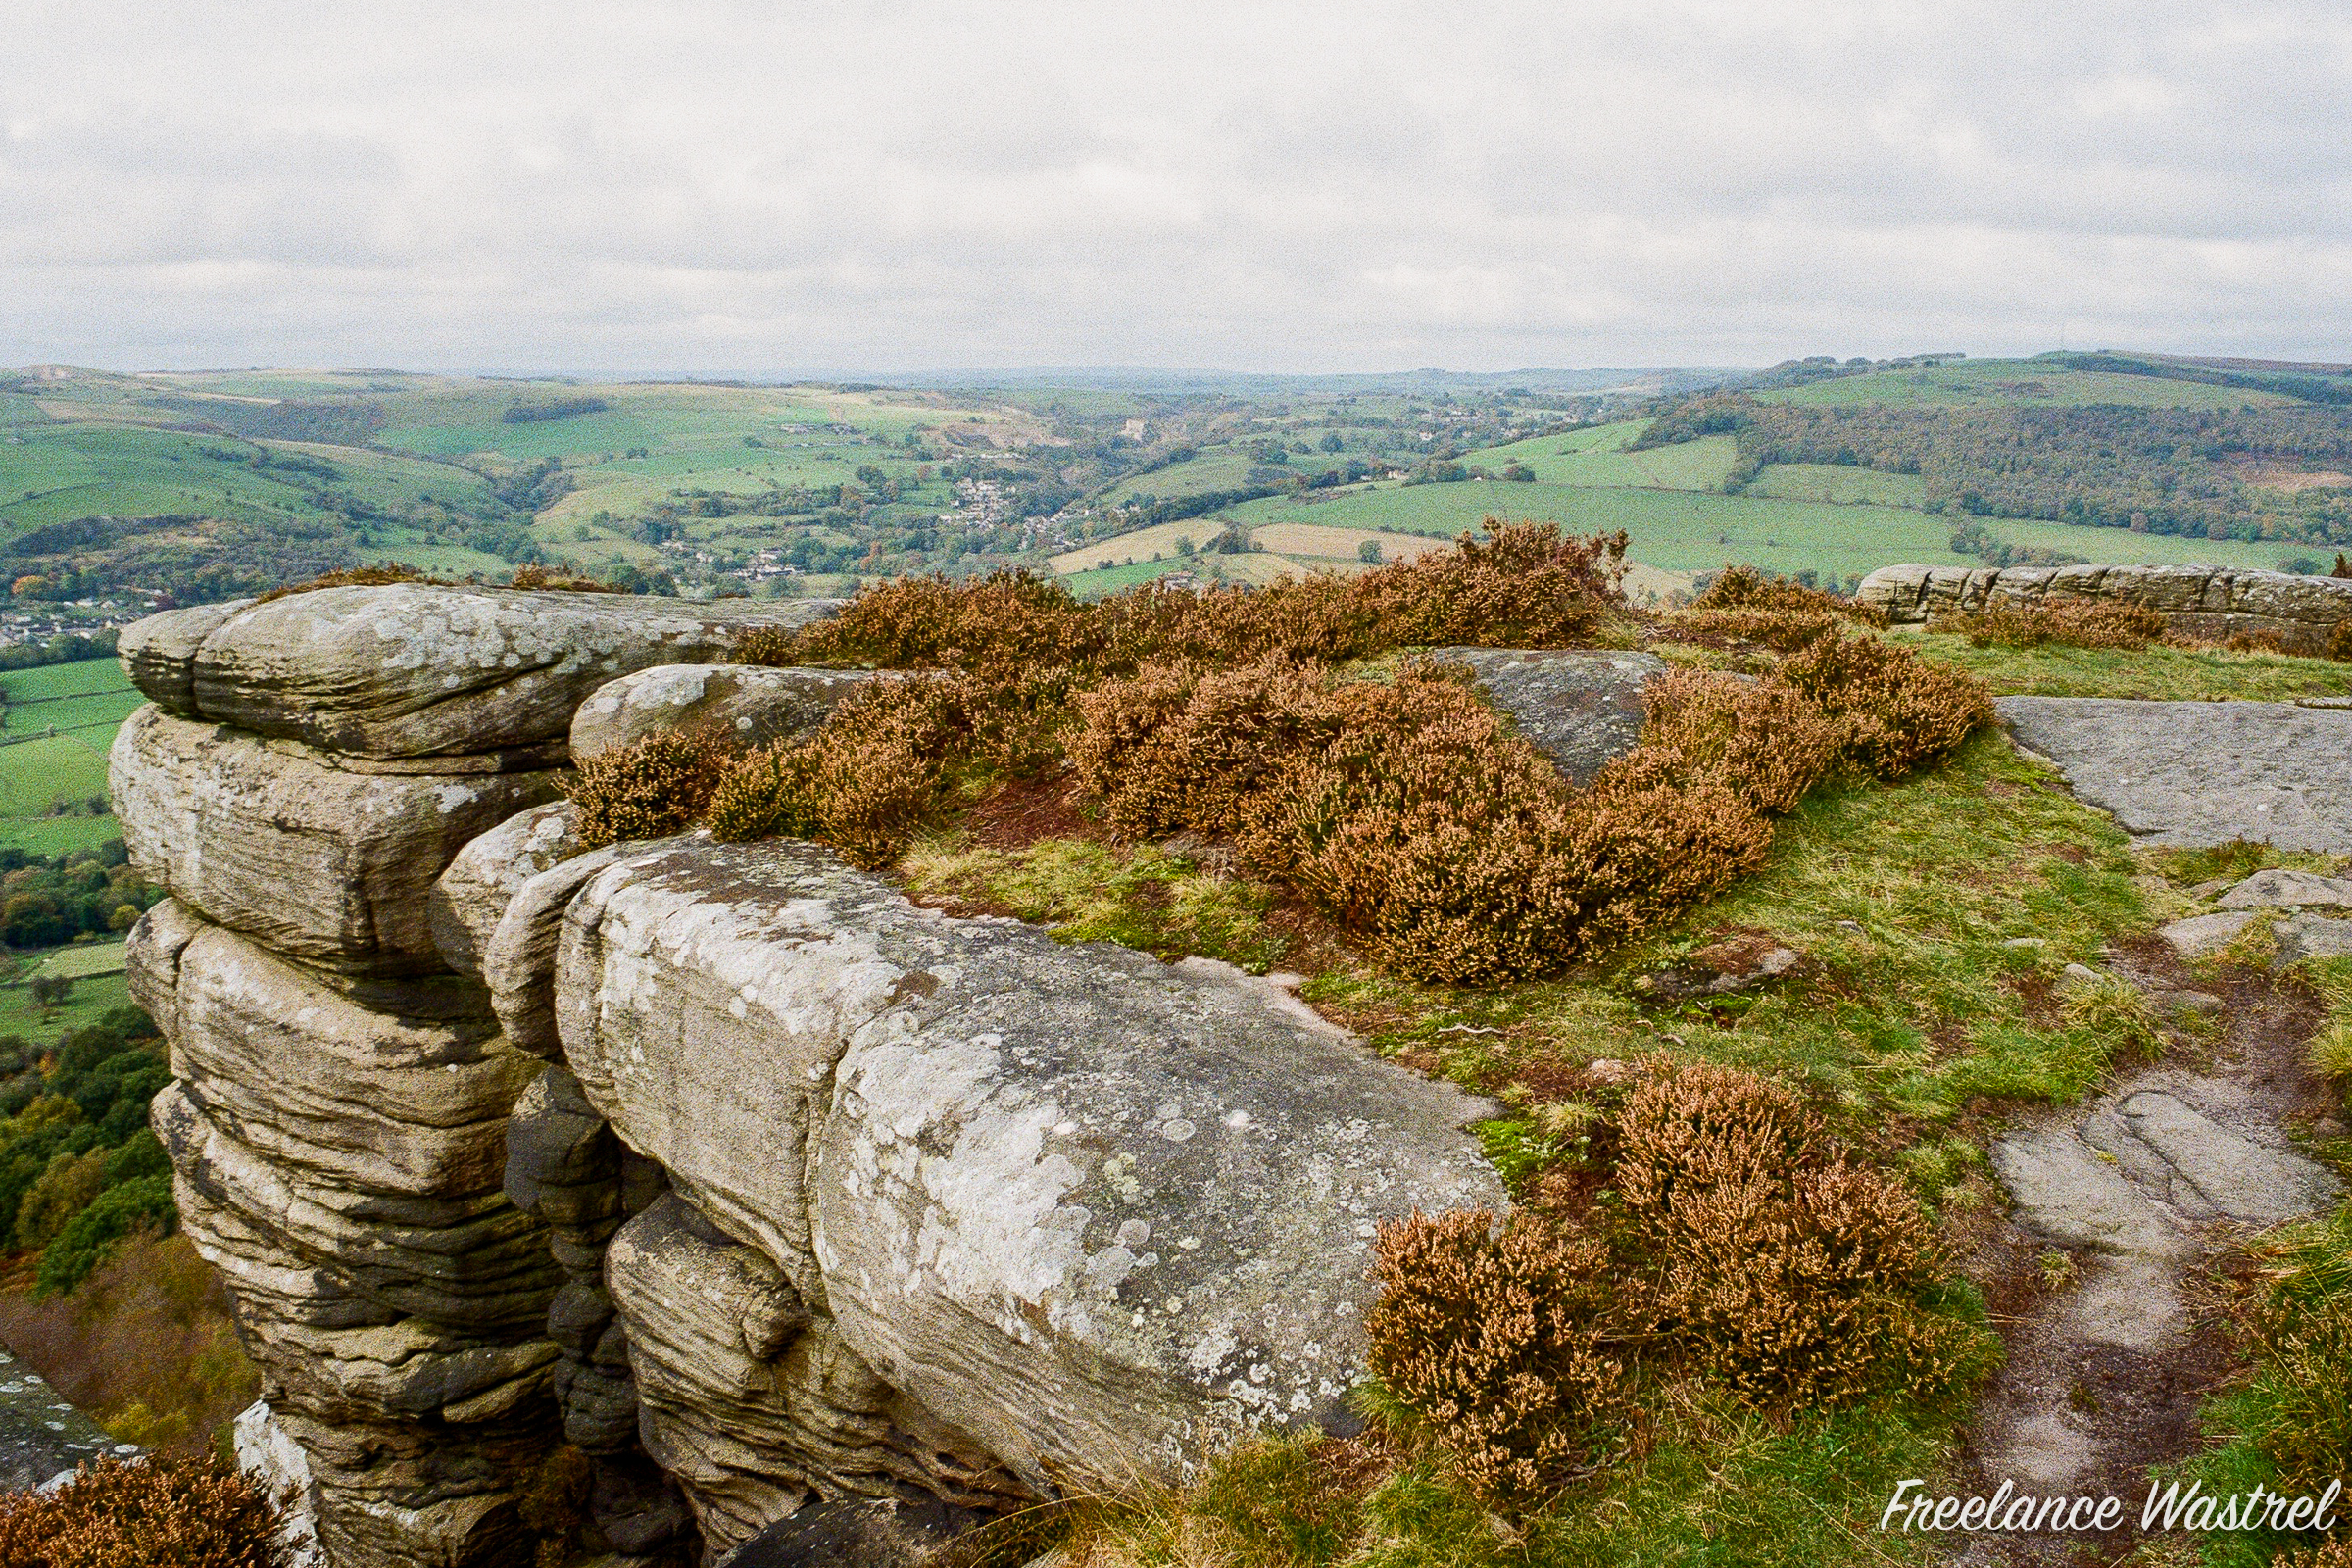 Curbar Edge, October 2020